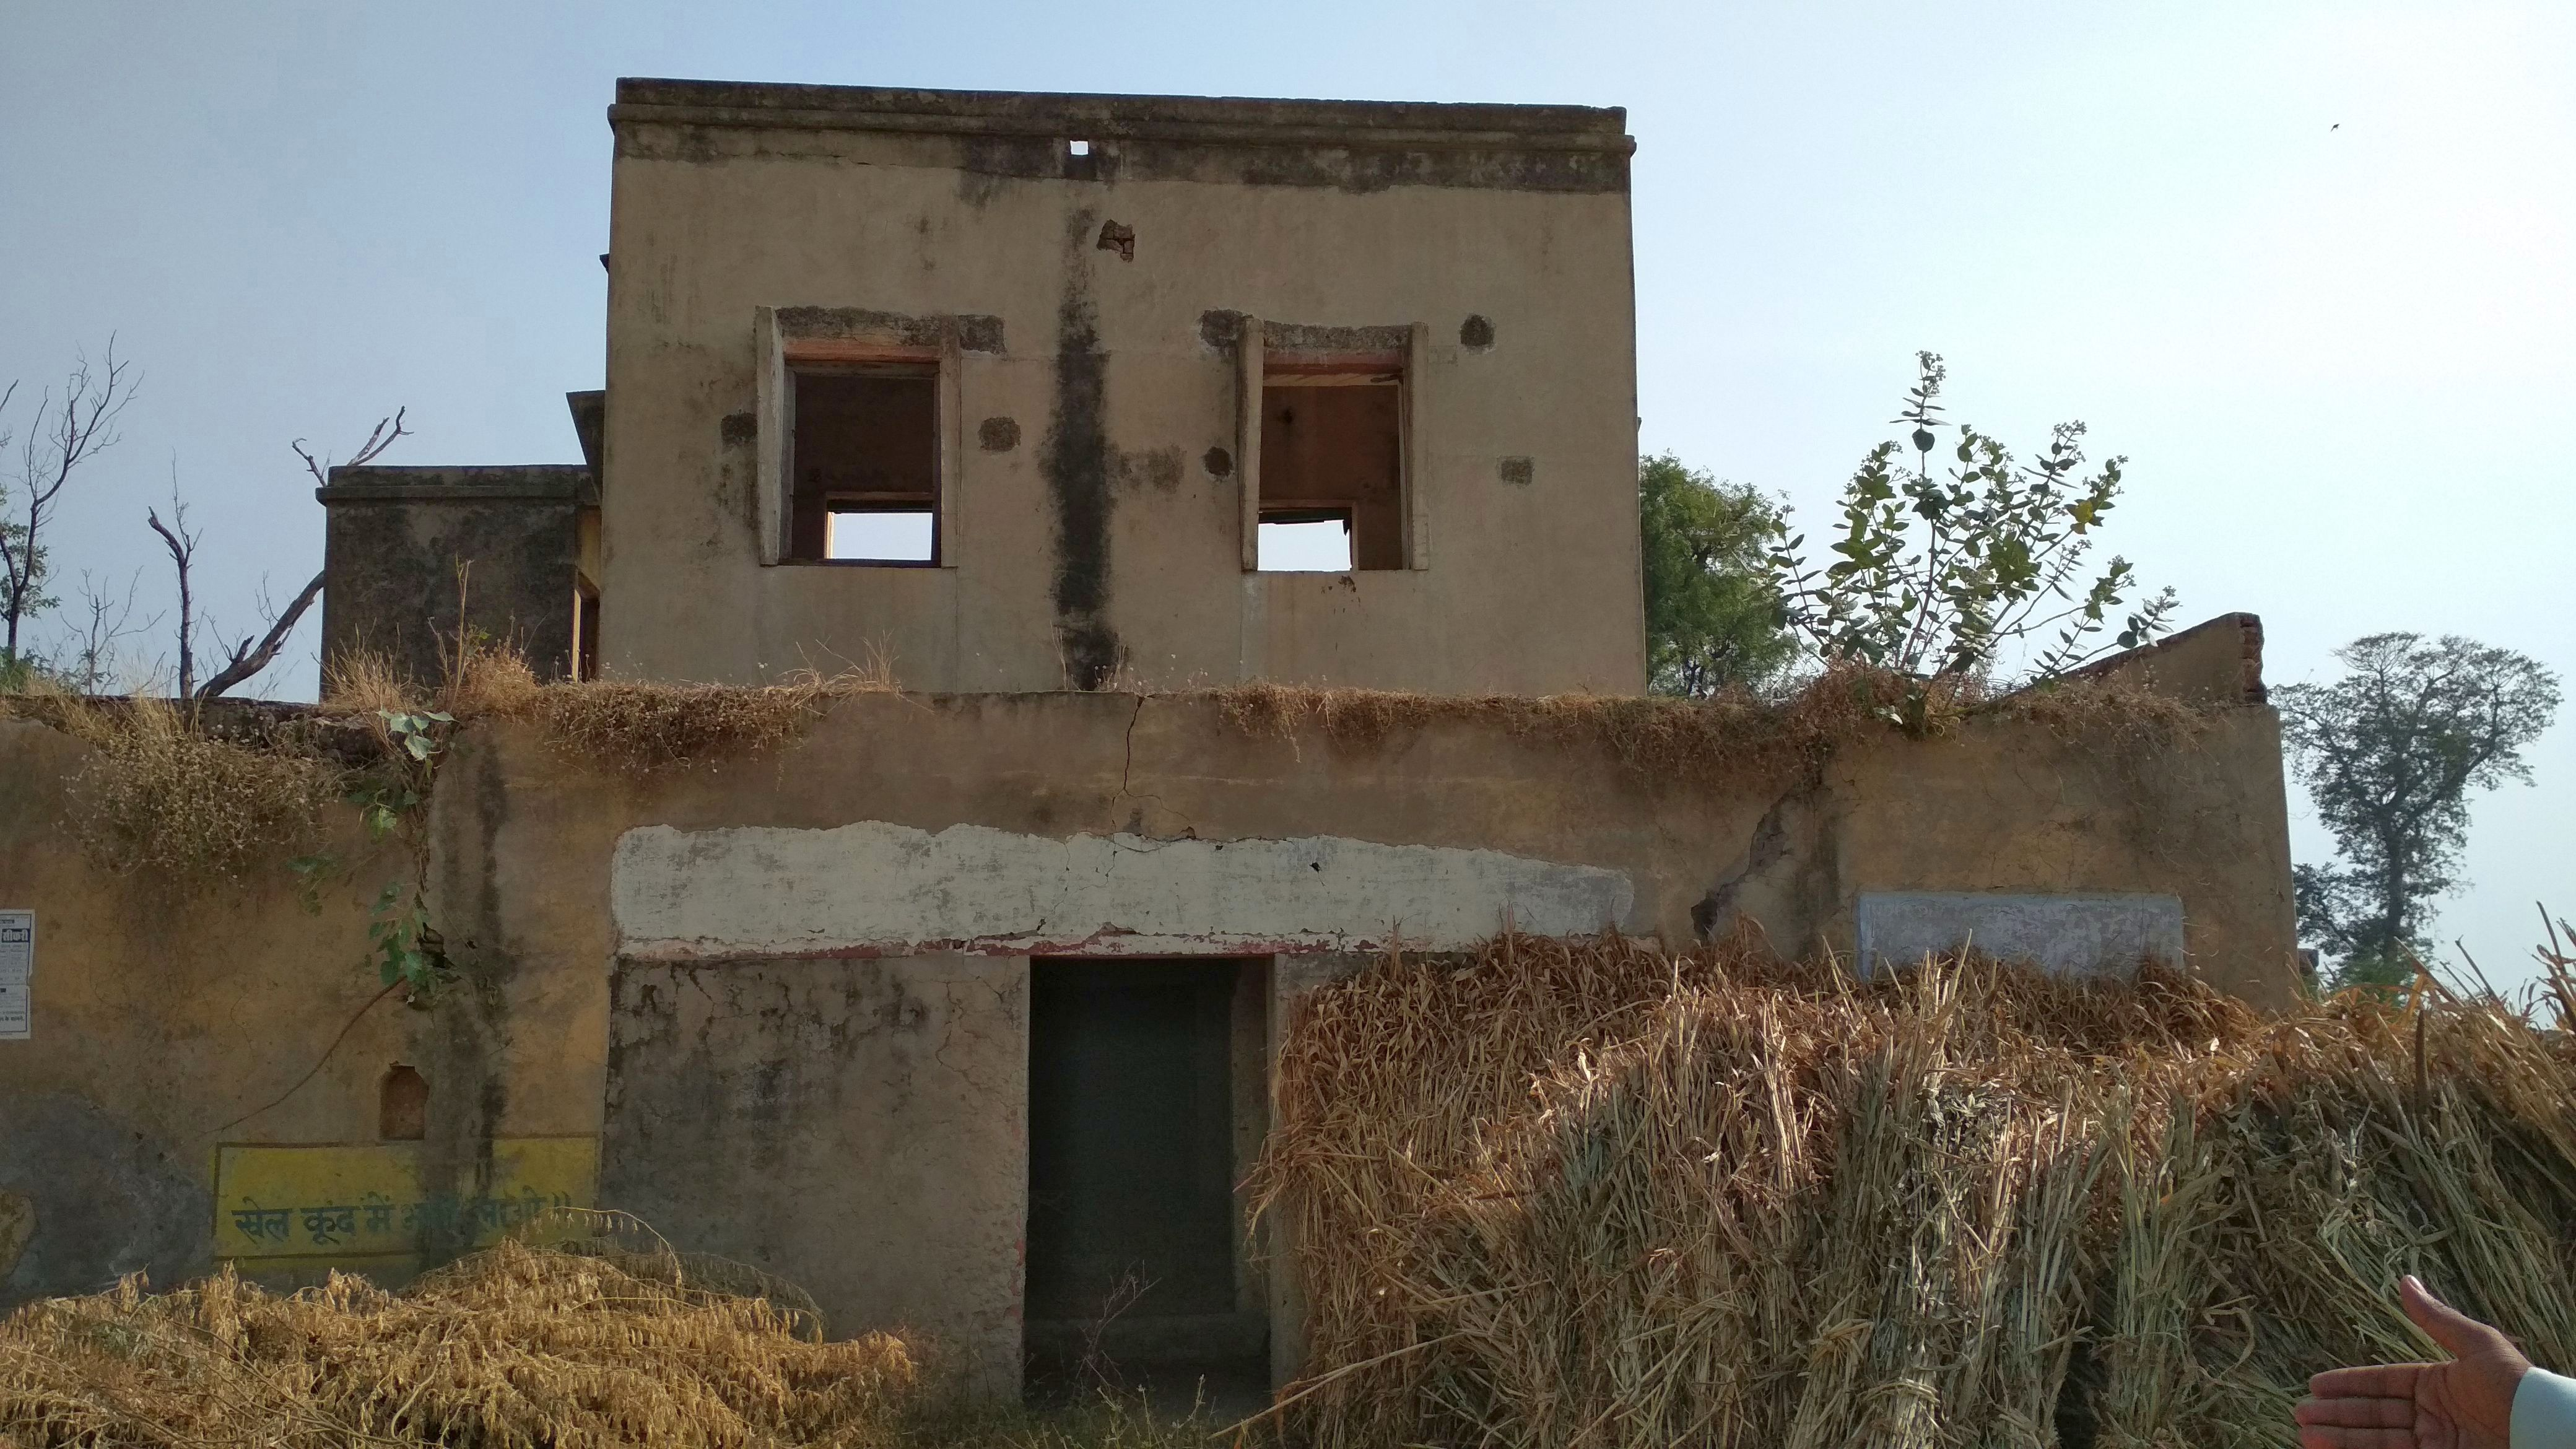 The system was elaborate and had dak bungalows or rest houses used by irrigation department officials during their travels. One decrepit dak bungalow stands in the Sikri village, its crumbling walls covered in weeds and grass. (Image: India Water Portal)